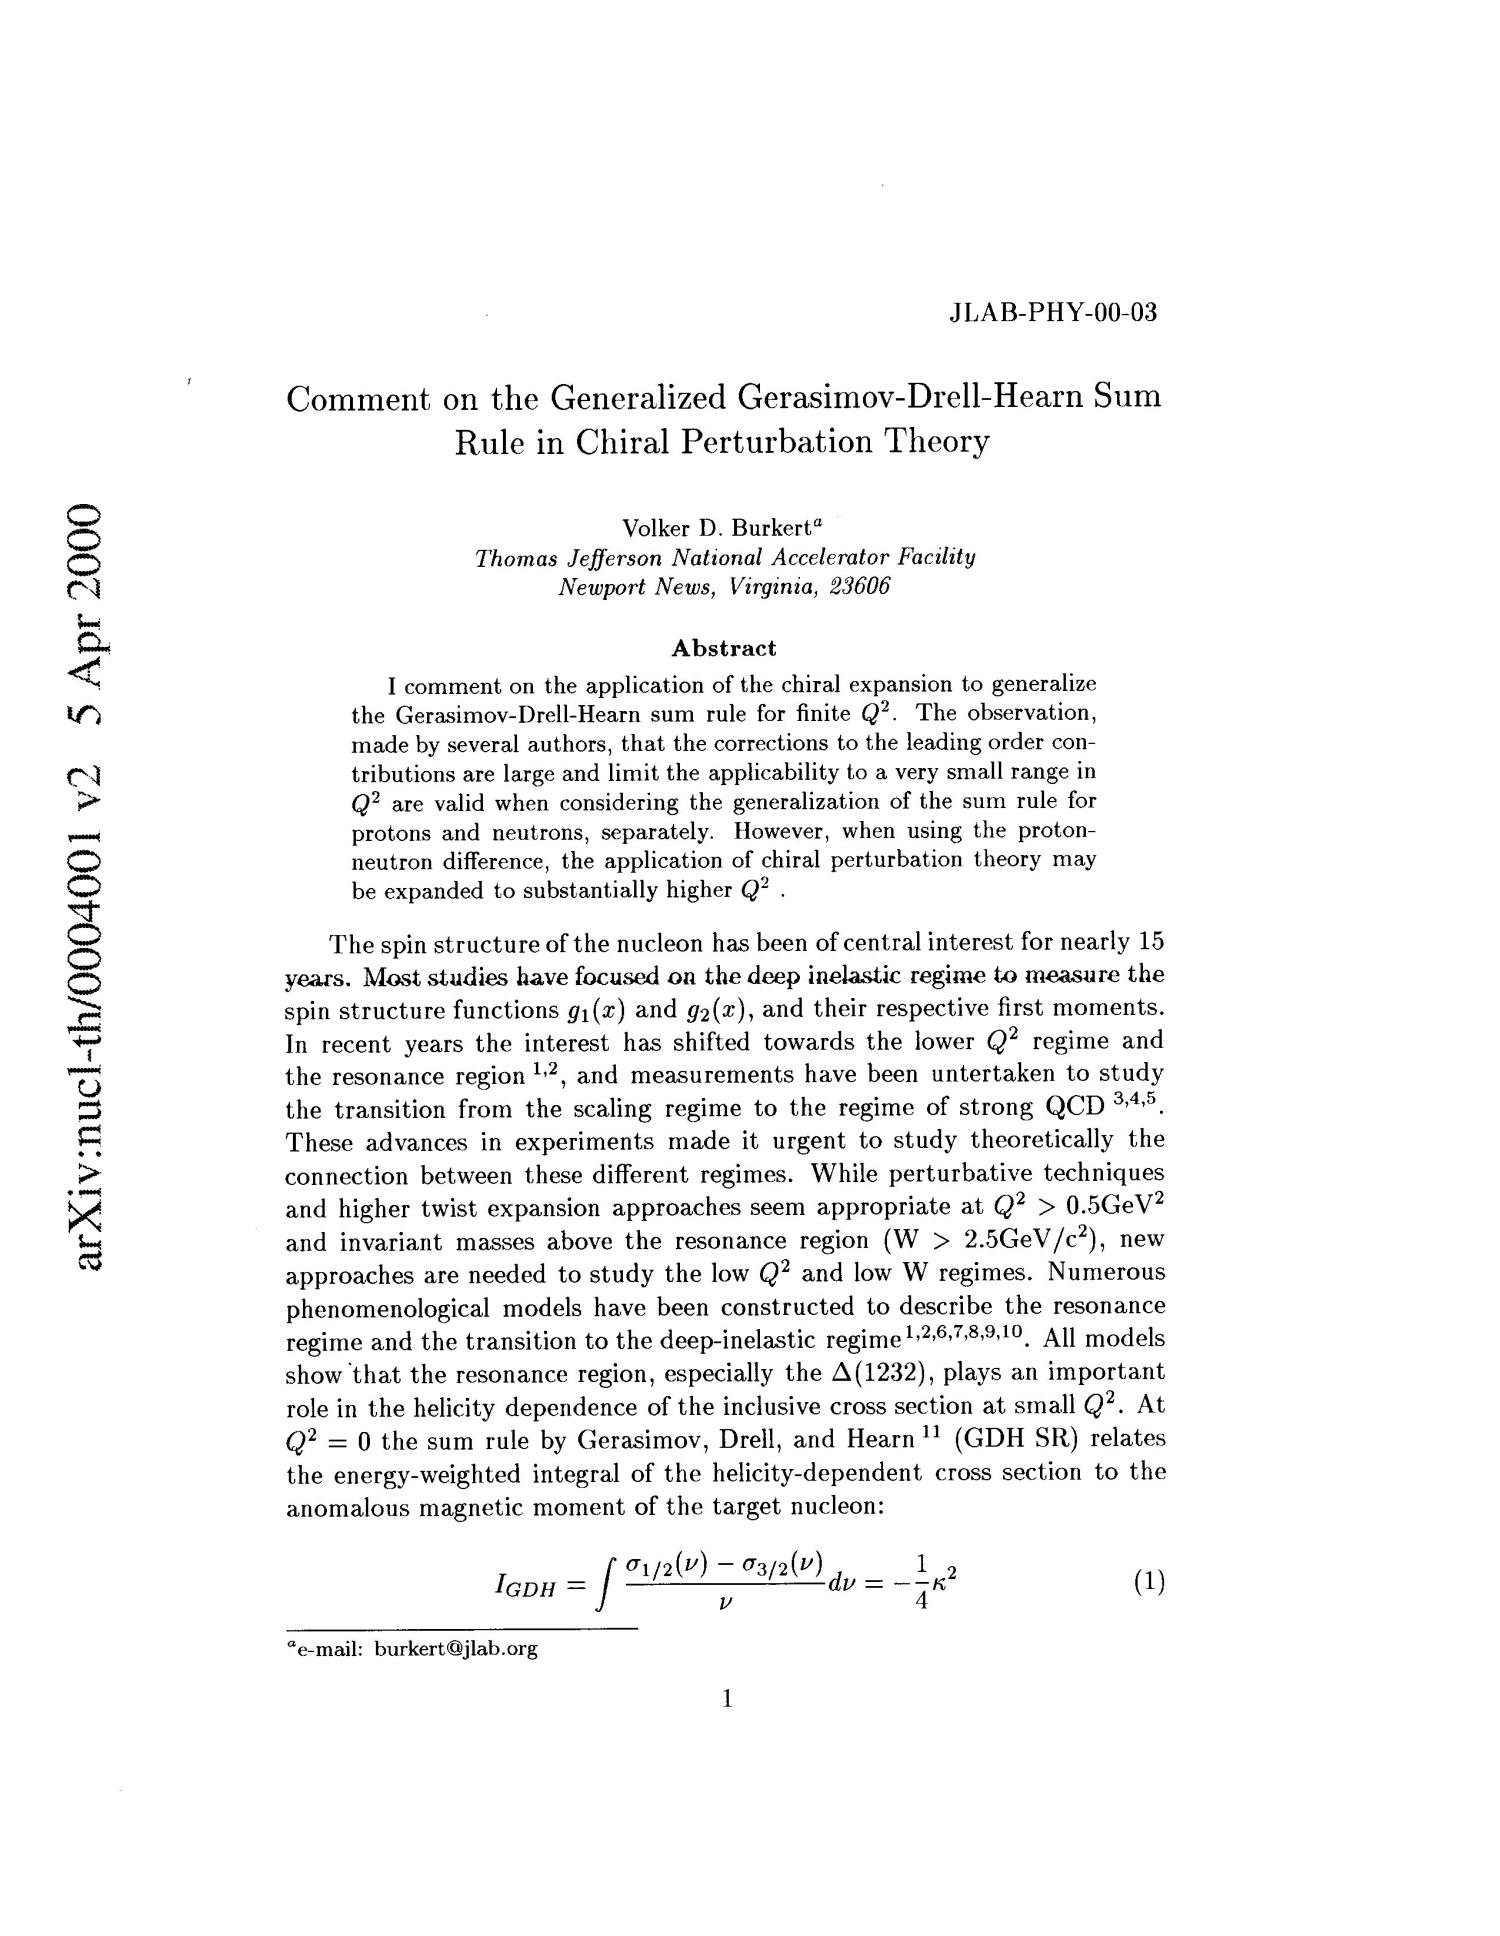 Comment on the generalized Gerasimov-Drell-Hearn sum rule in chiral perturbation theory                                                                                                      [Sequence #]: 1 of 5